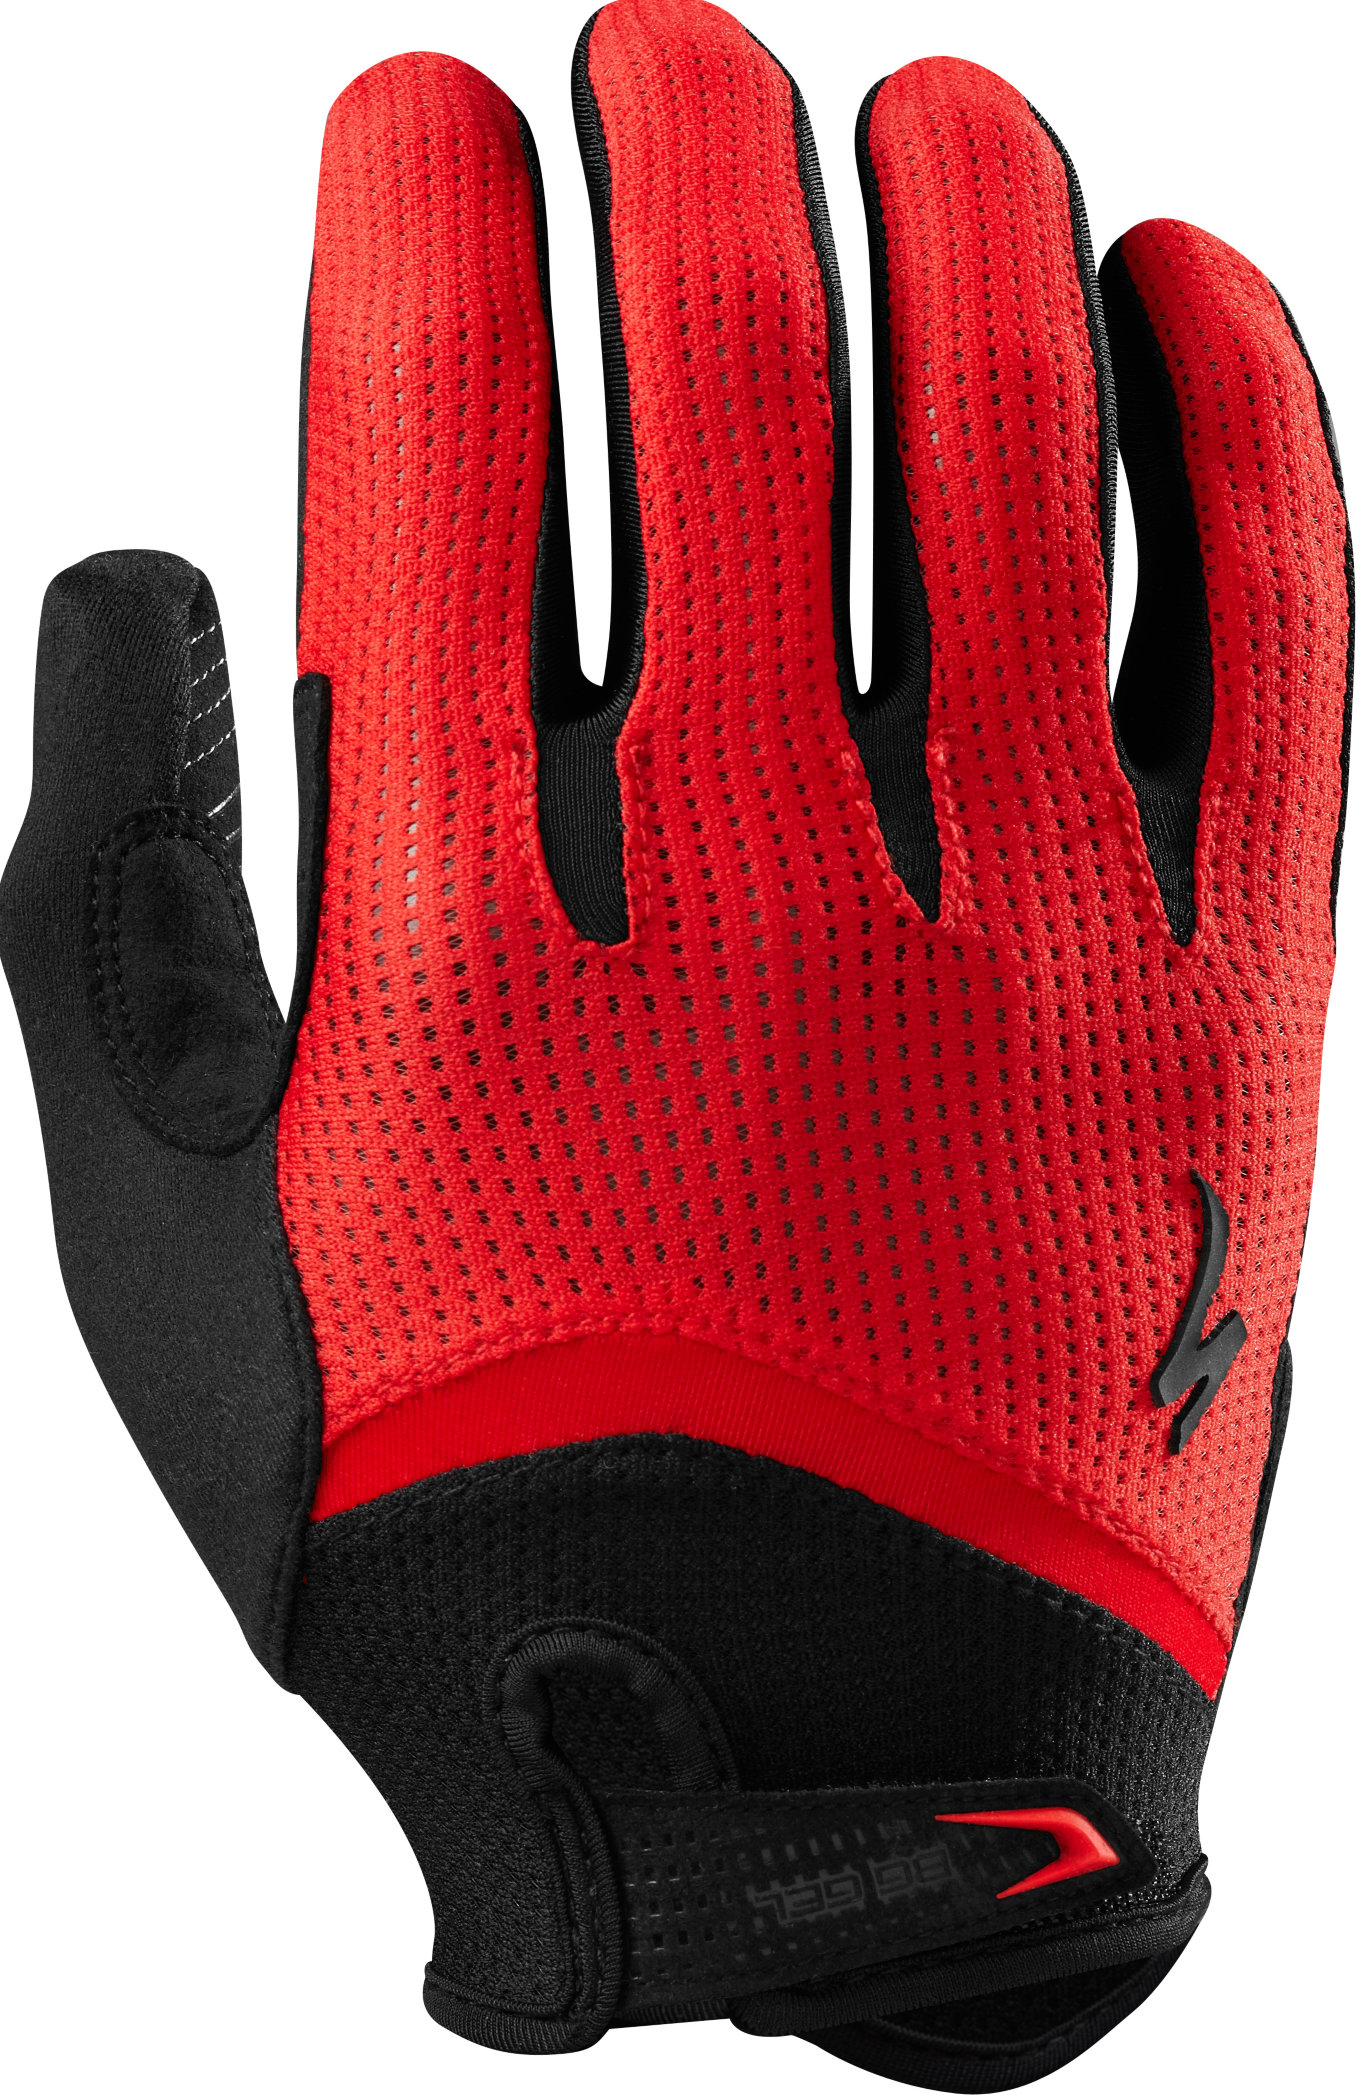 SPECIALIZED BG GEL GLOVE LF RED M - Bikedreams & Dustbikes